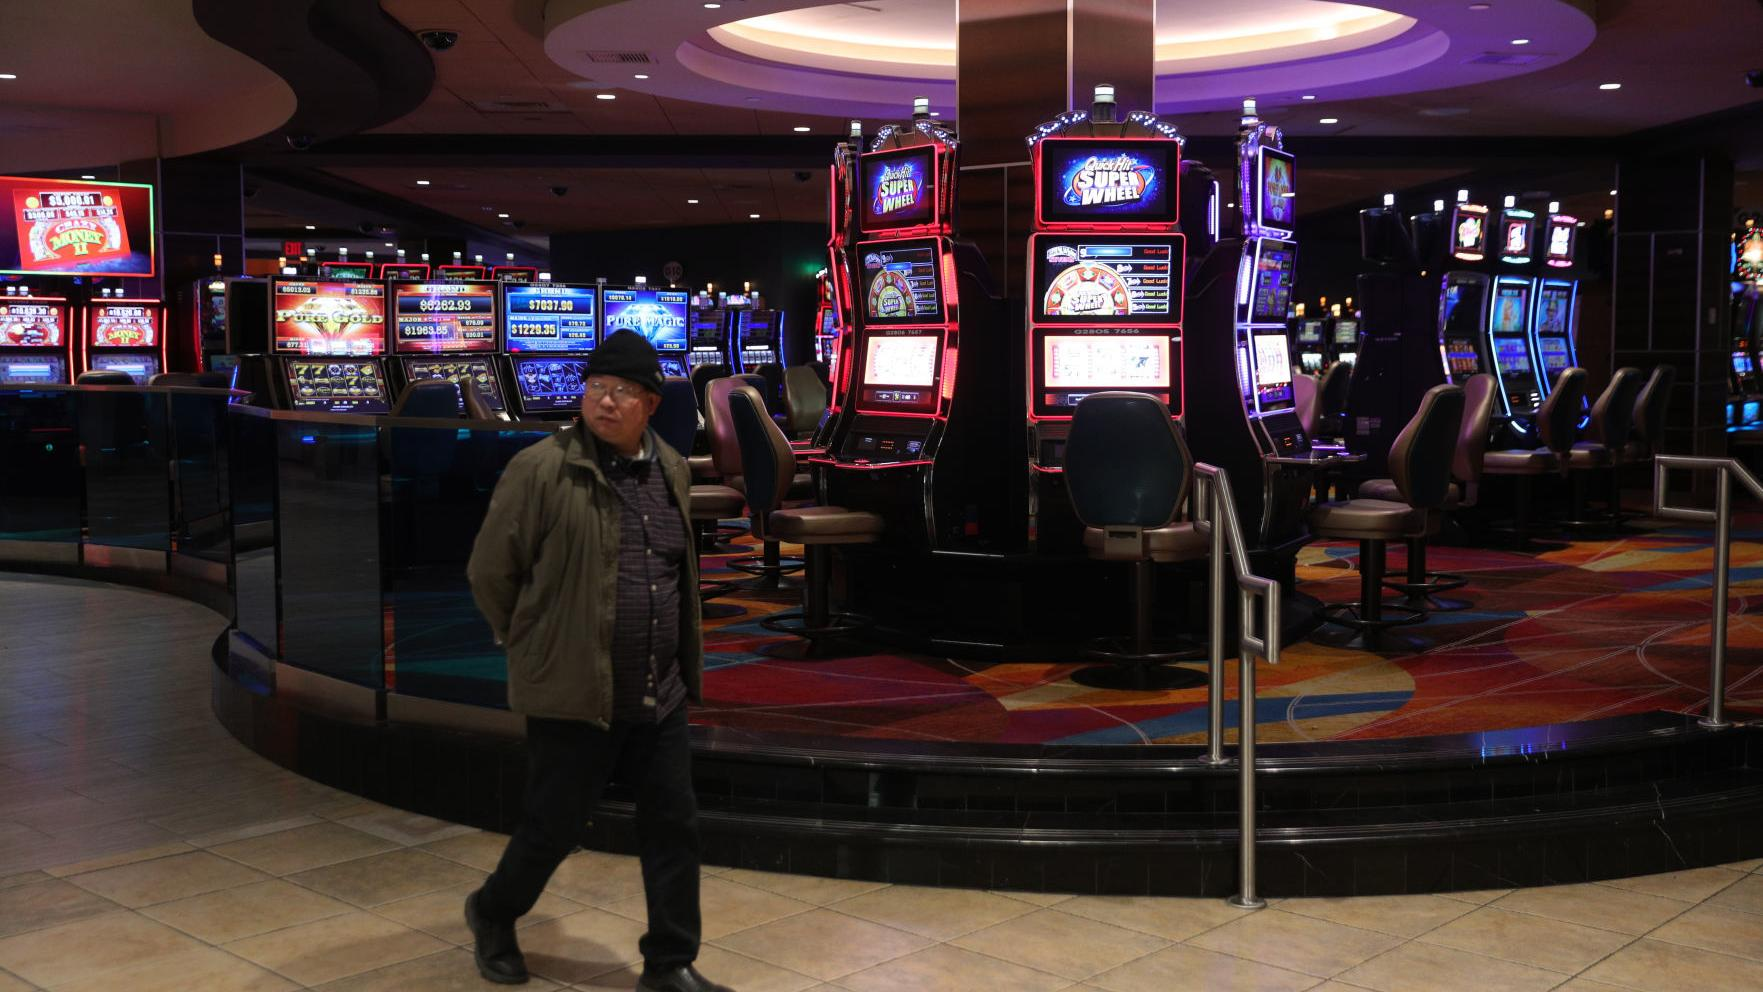 Gov. Murphy orders indefinite shutdown of Atlantic City casinos to reduce spread of COVID-19 | Casinos & Tourism | pressofatlanticcity.com